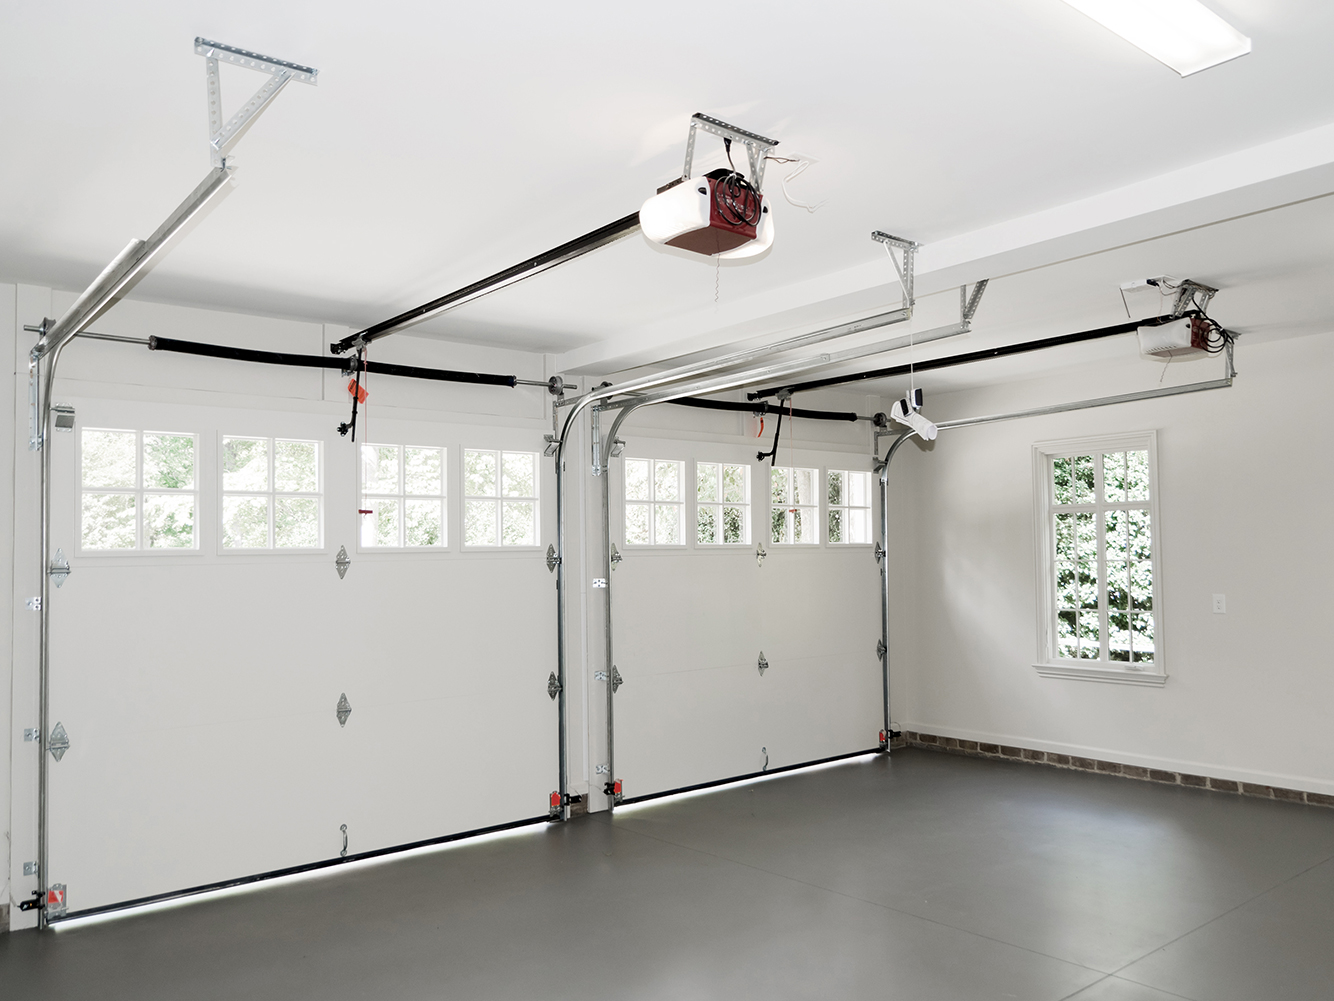 jdt garage door service mesa az garage door repair